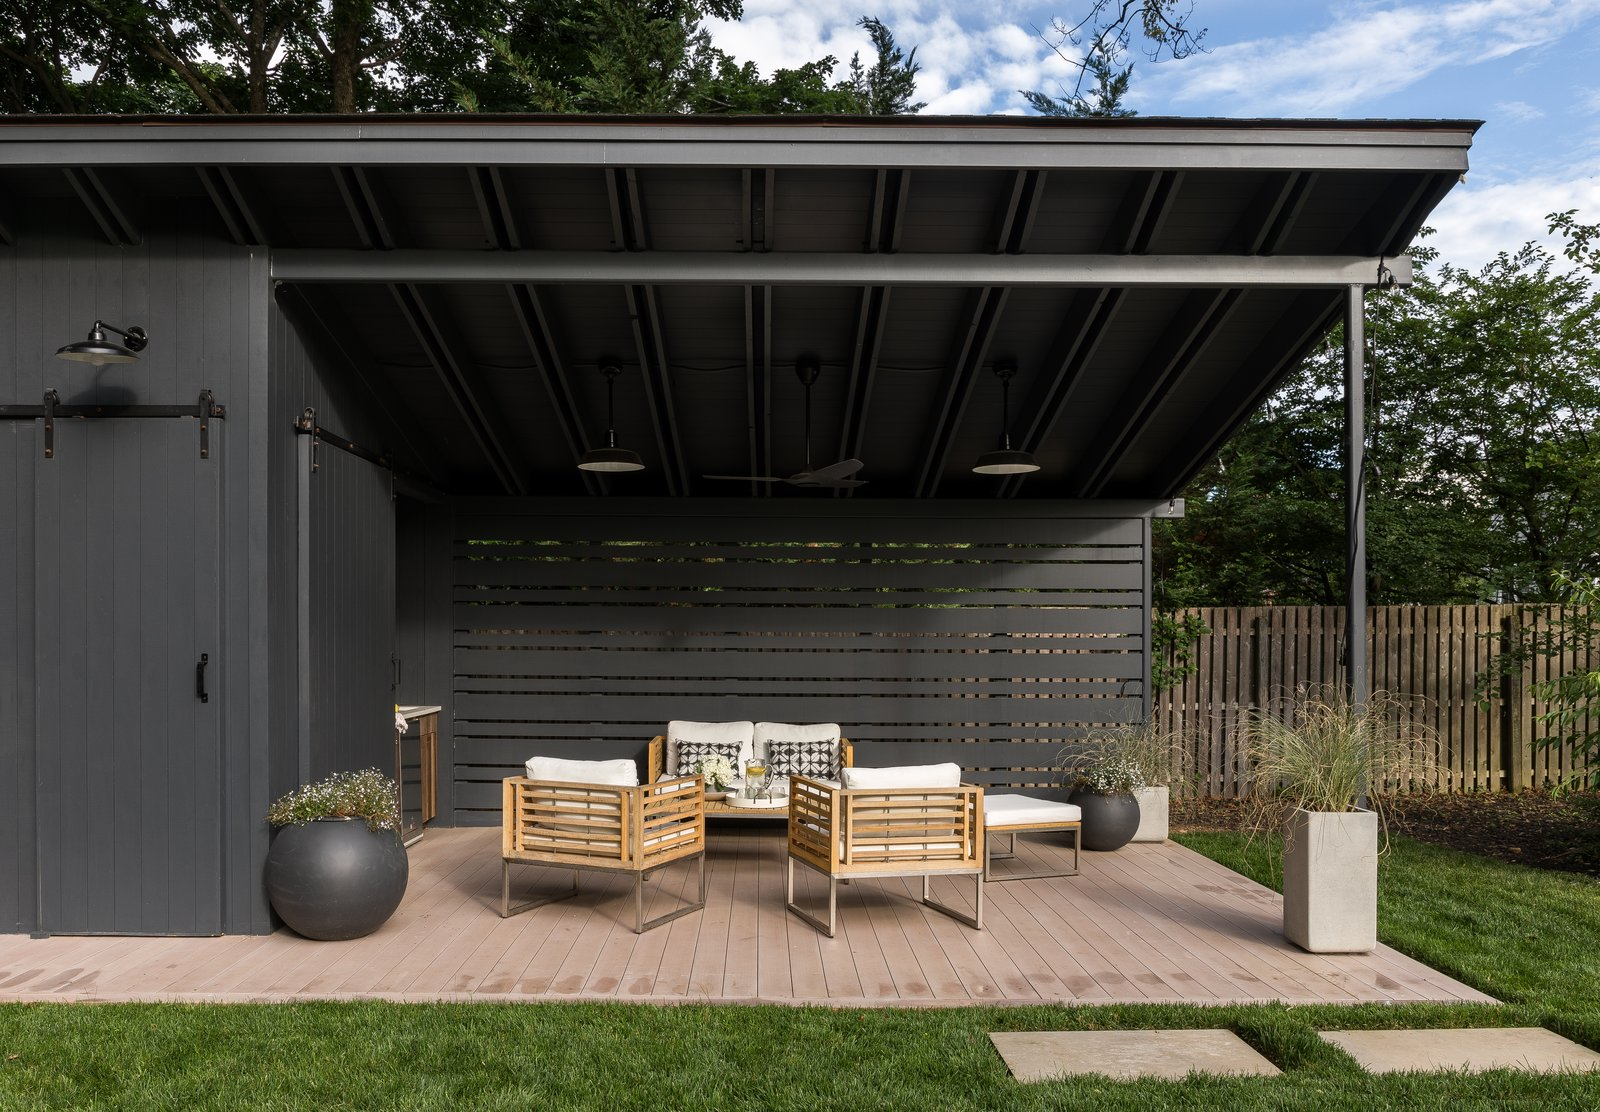 Outdoor, Large, Hanging, Back Yard, Hardscapes, Trees, Wood, Grass, Wood, Pavers, and Vertical The second seating area features furniture from All Modern.  Best Outdoor Pavers Wood Photos from A New Jersey Neighborhood Gets a Gorgeous Passive House